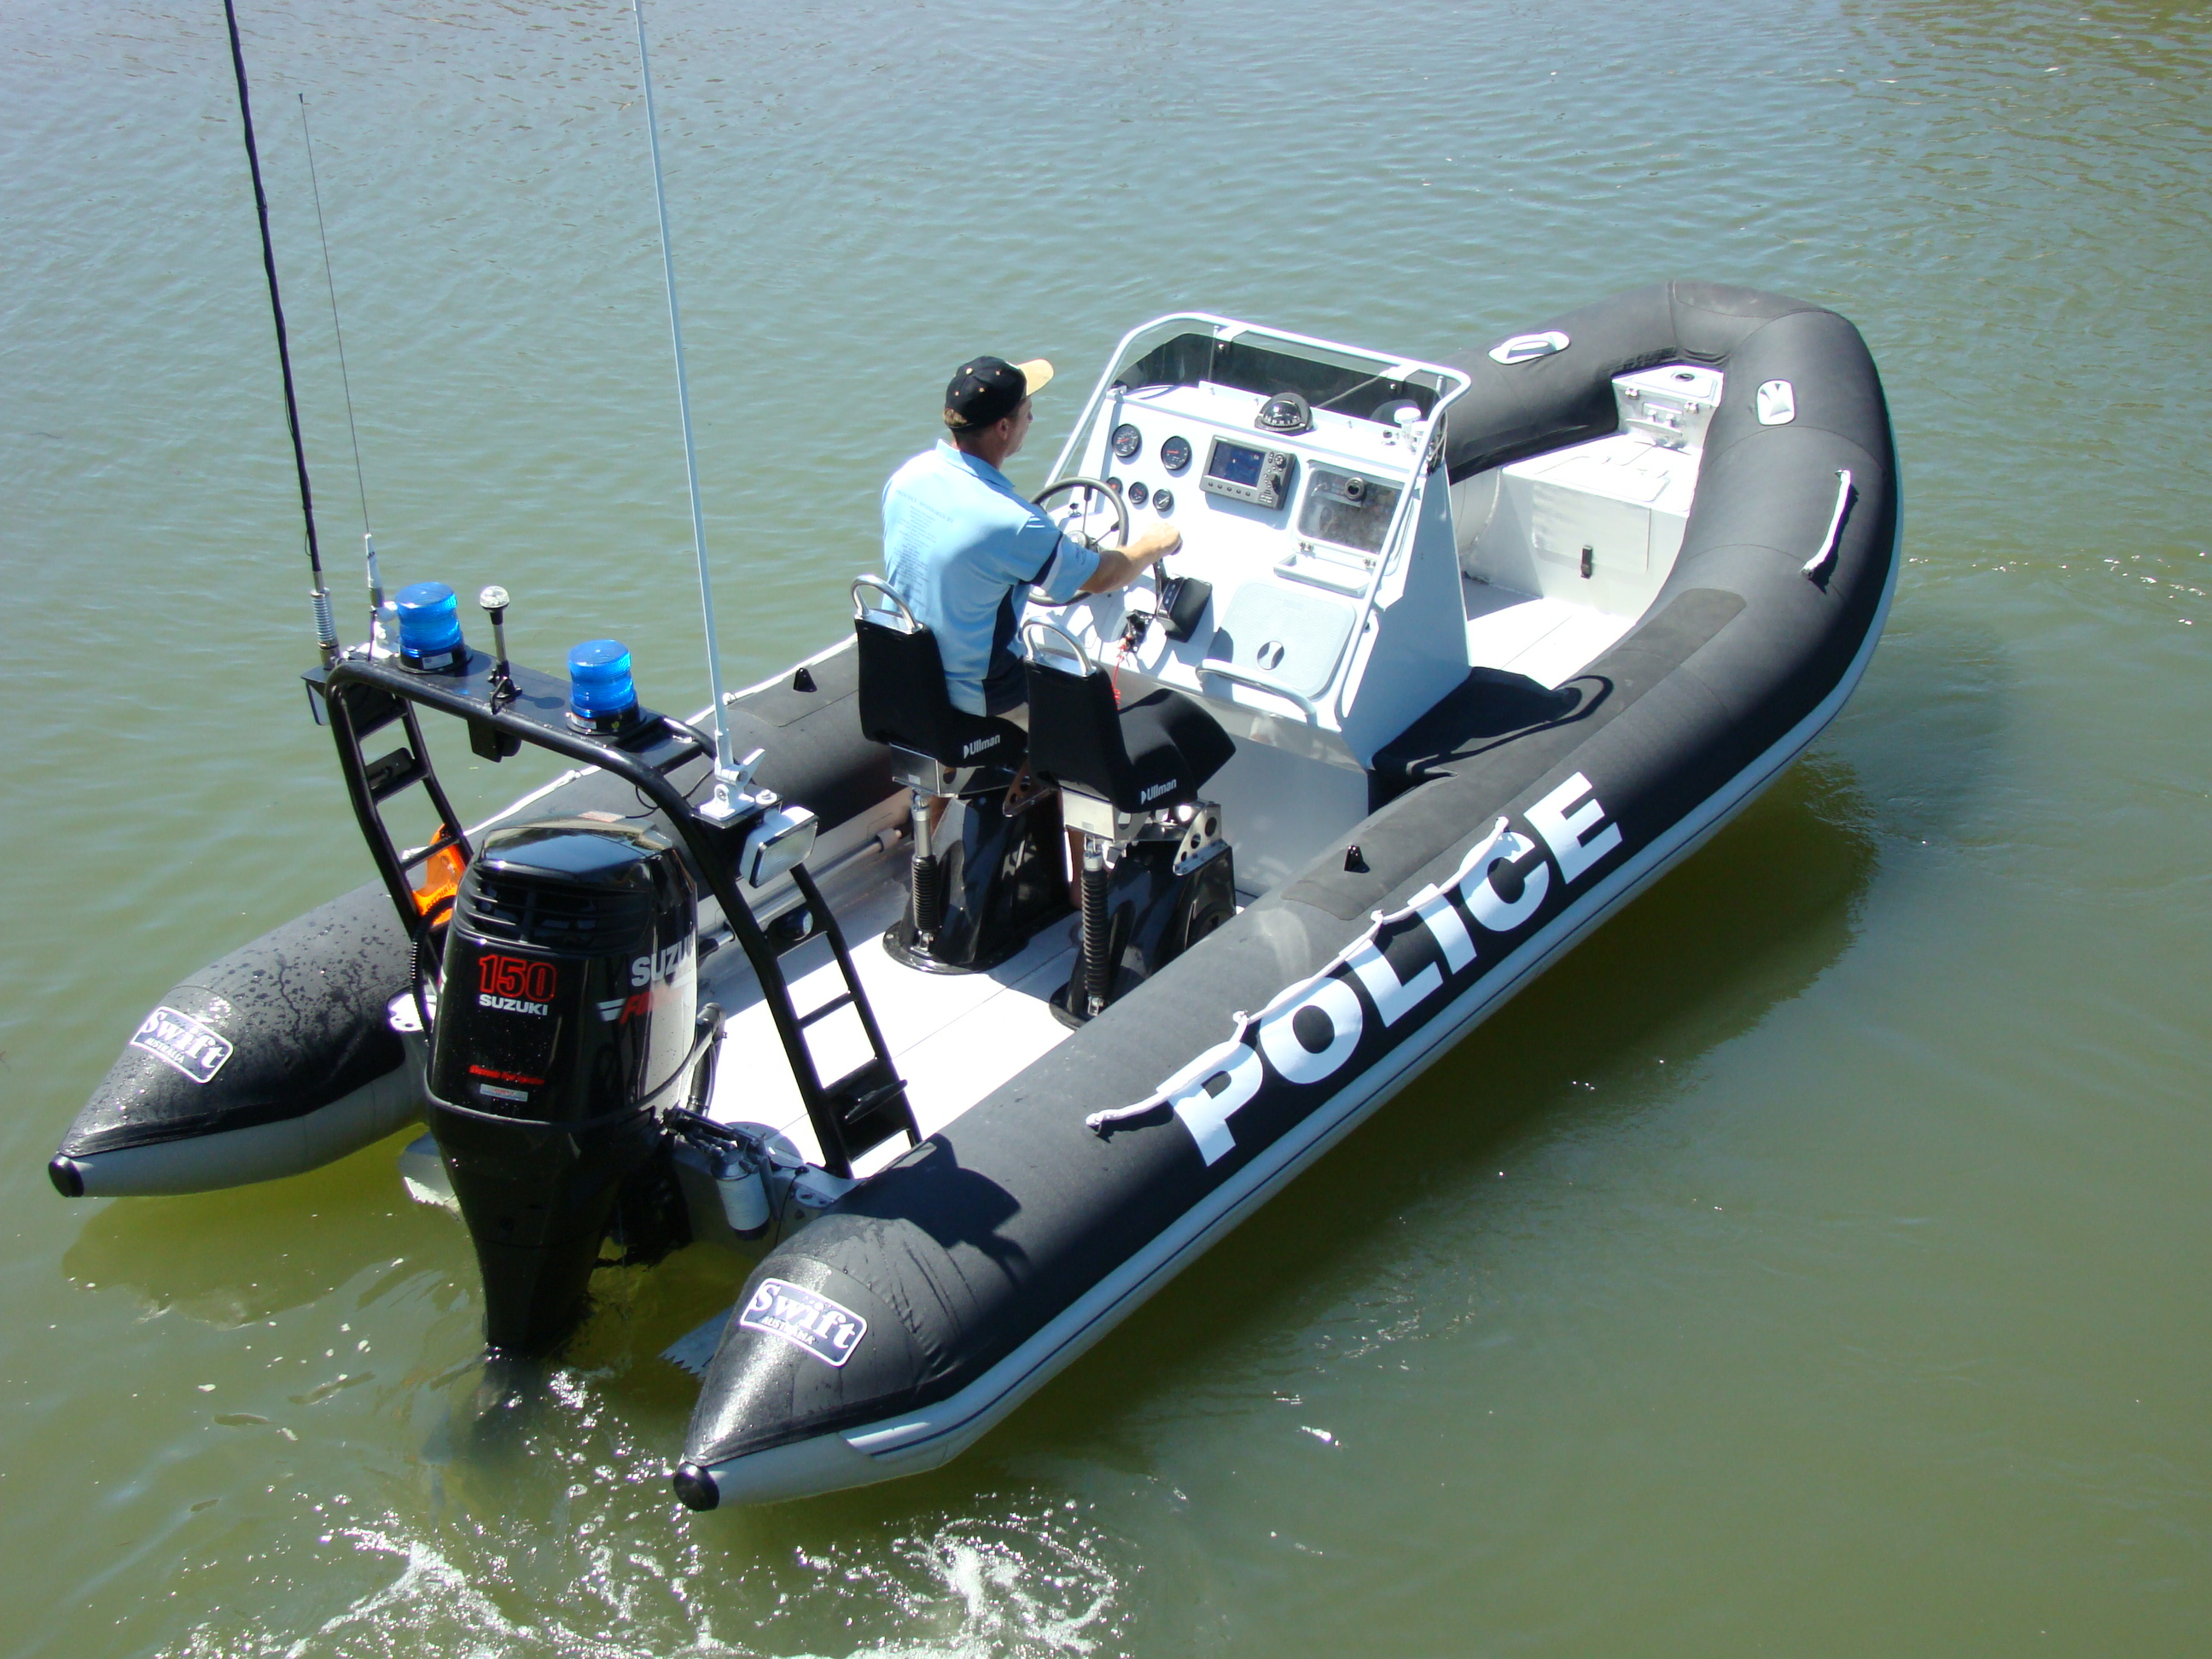 Queensland Water Police